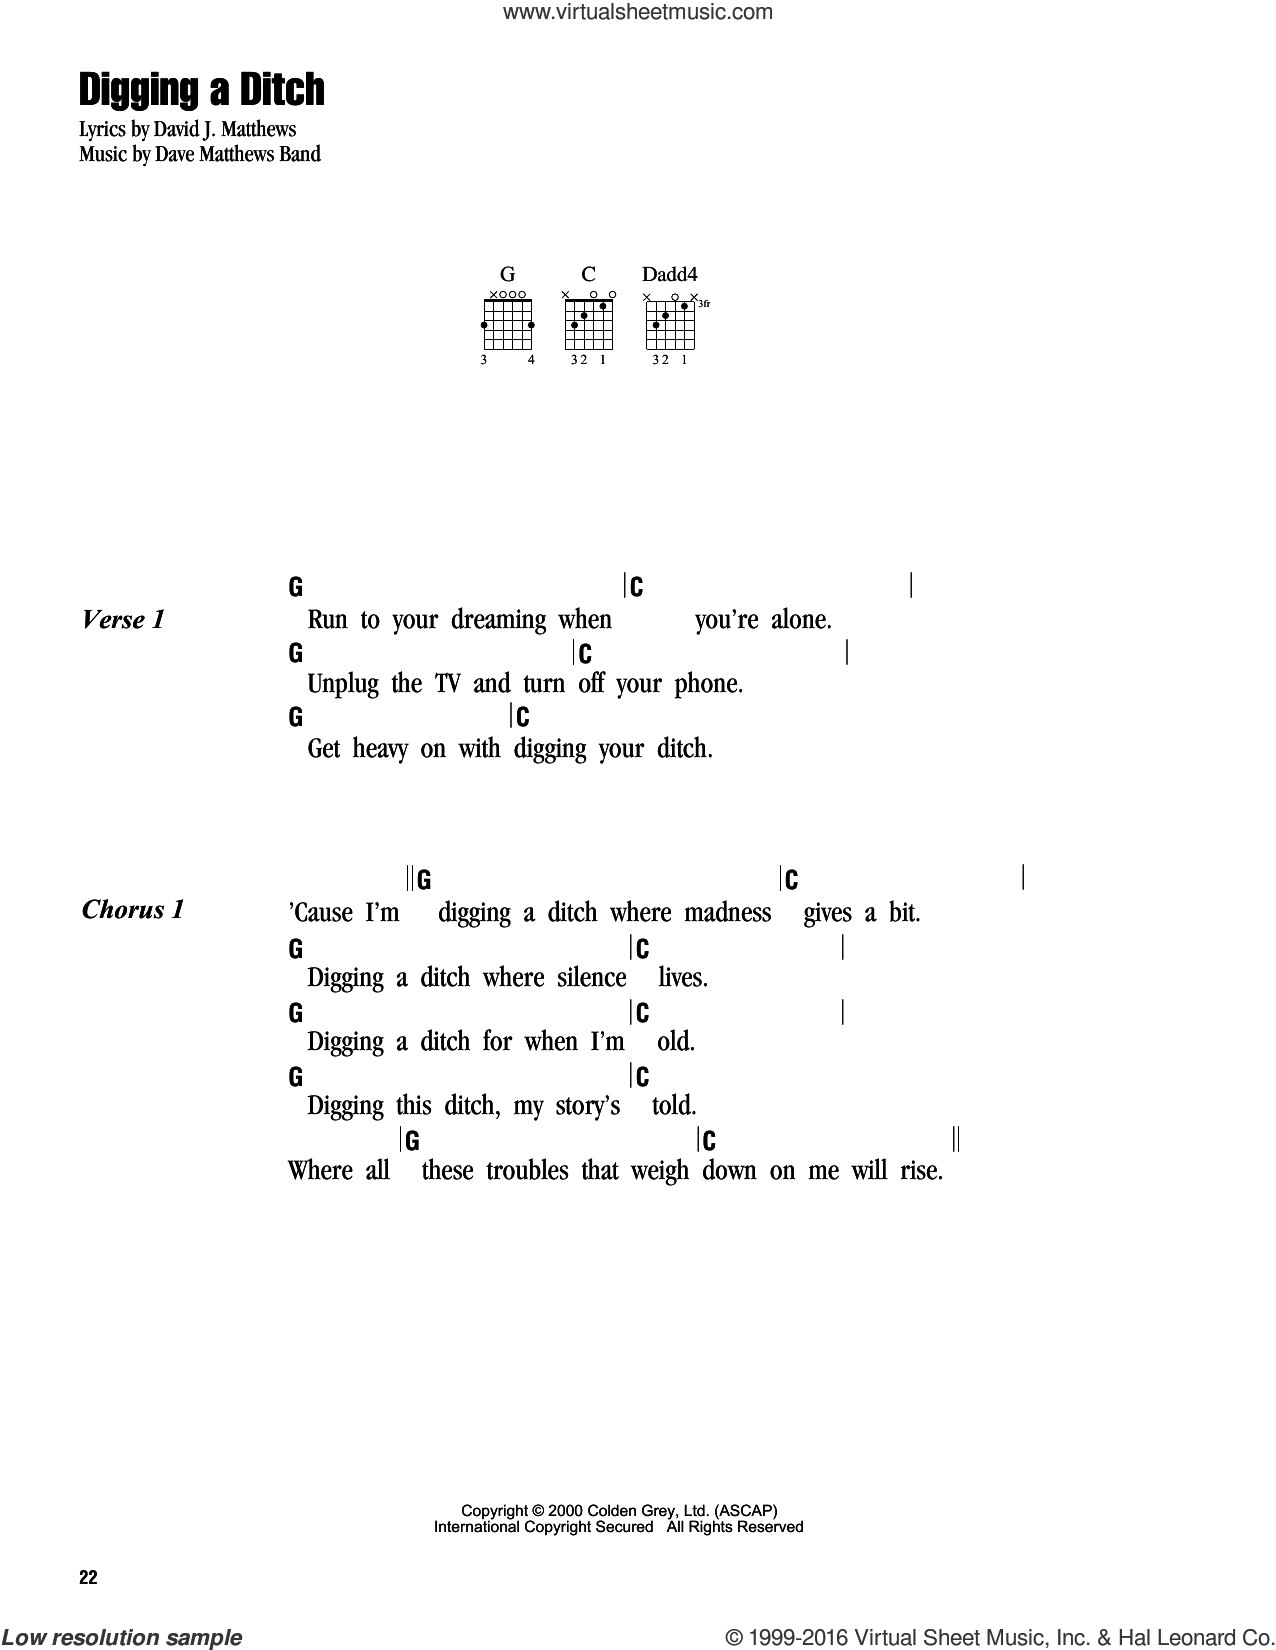 Digging A Ditch sheet music for guitar (chords) by Dave Matthews Band